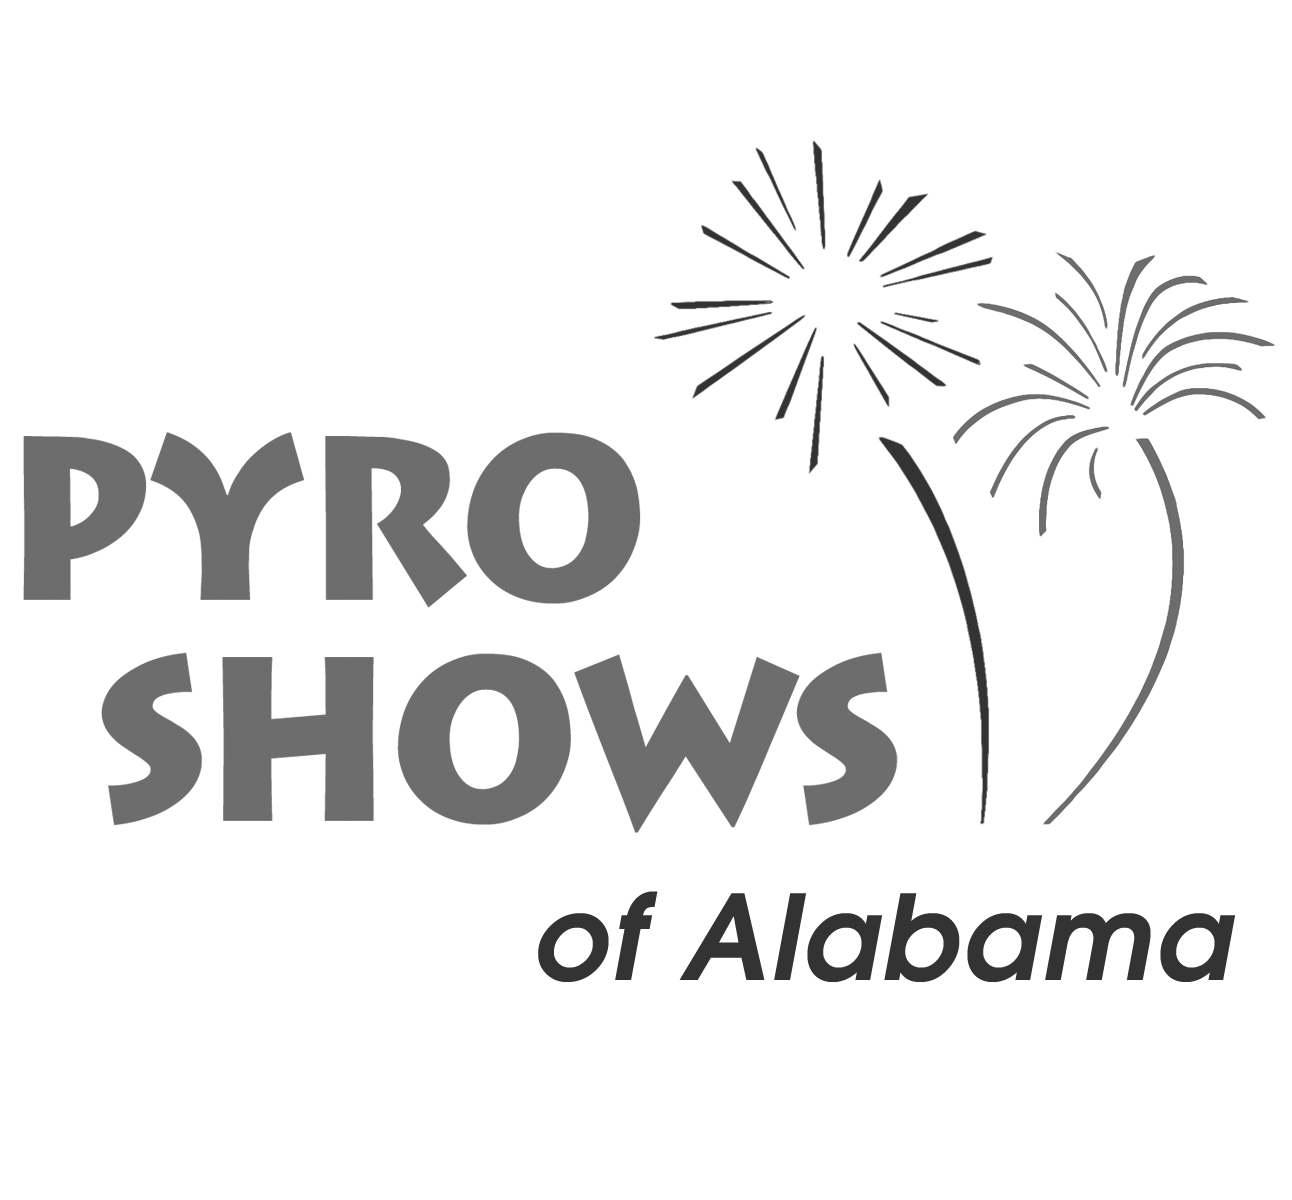 Pyro Shows of Alabama